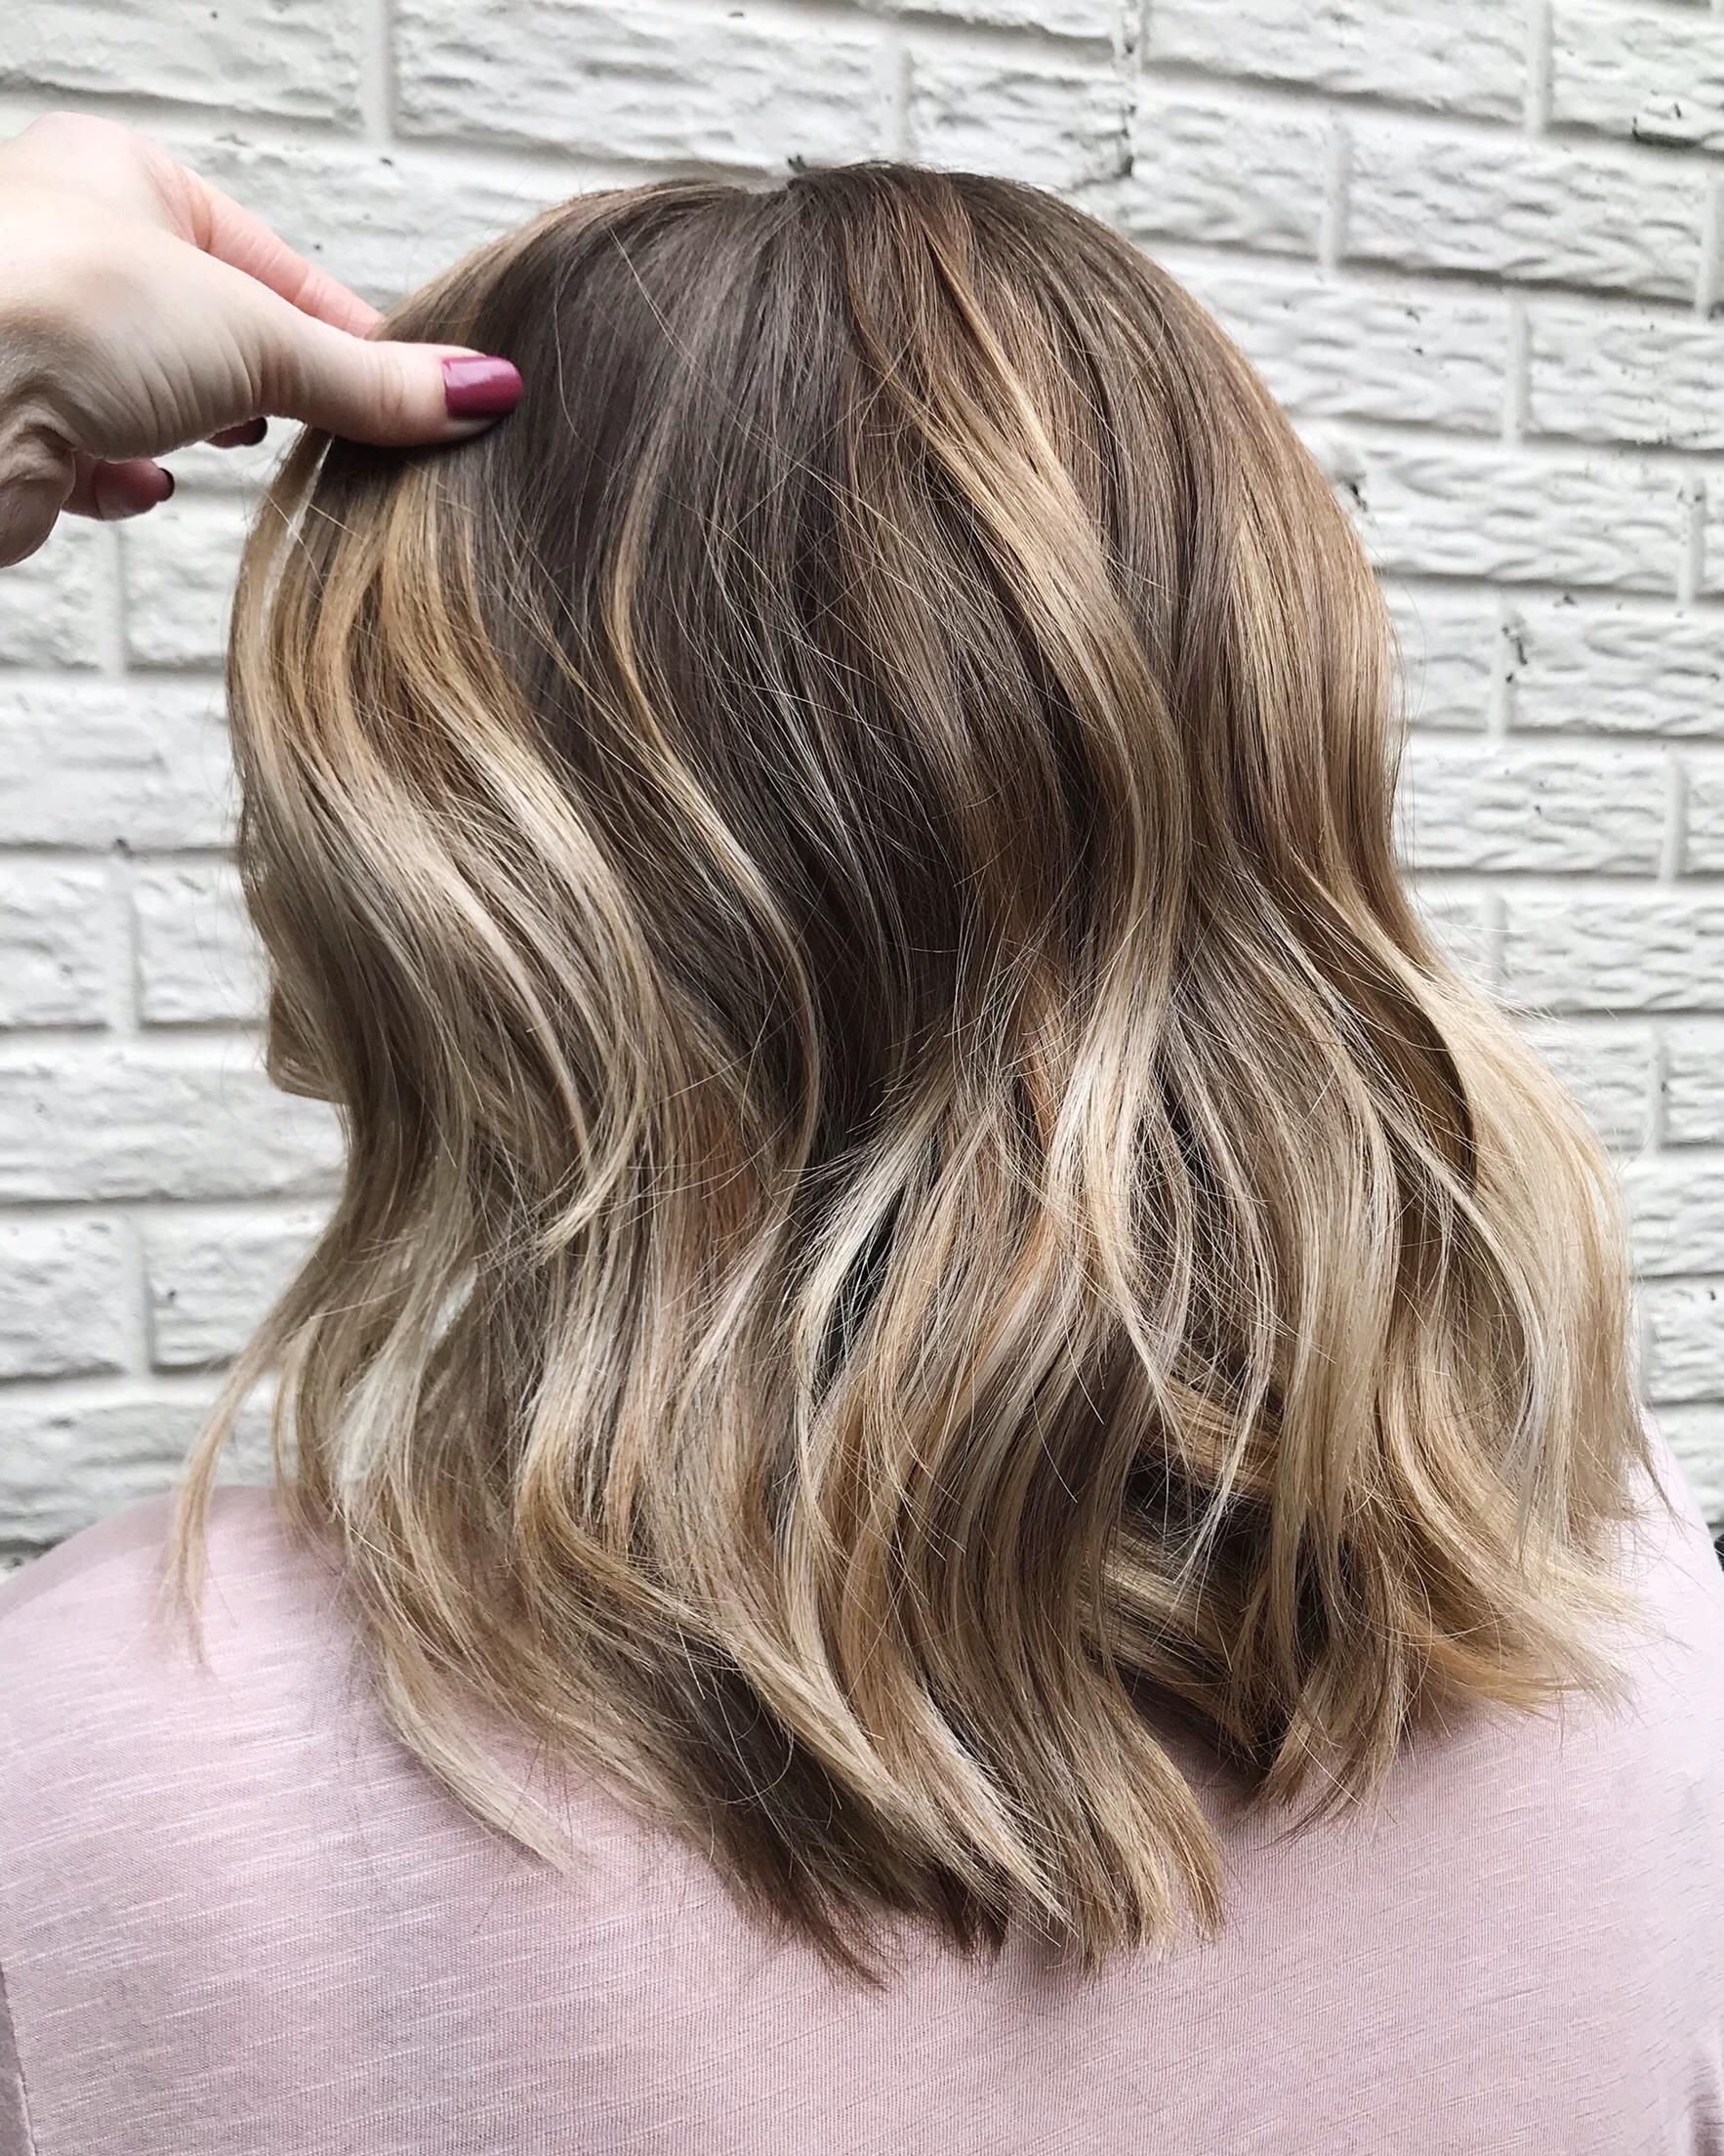 Balayage Handpainted Highlights 140 Hand Painted Highlights For A Natural Looking Sun Kissed Look Hand Painted Highlights Natural Curls Hairstyles Balayage